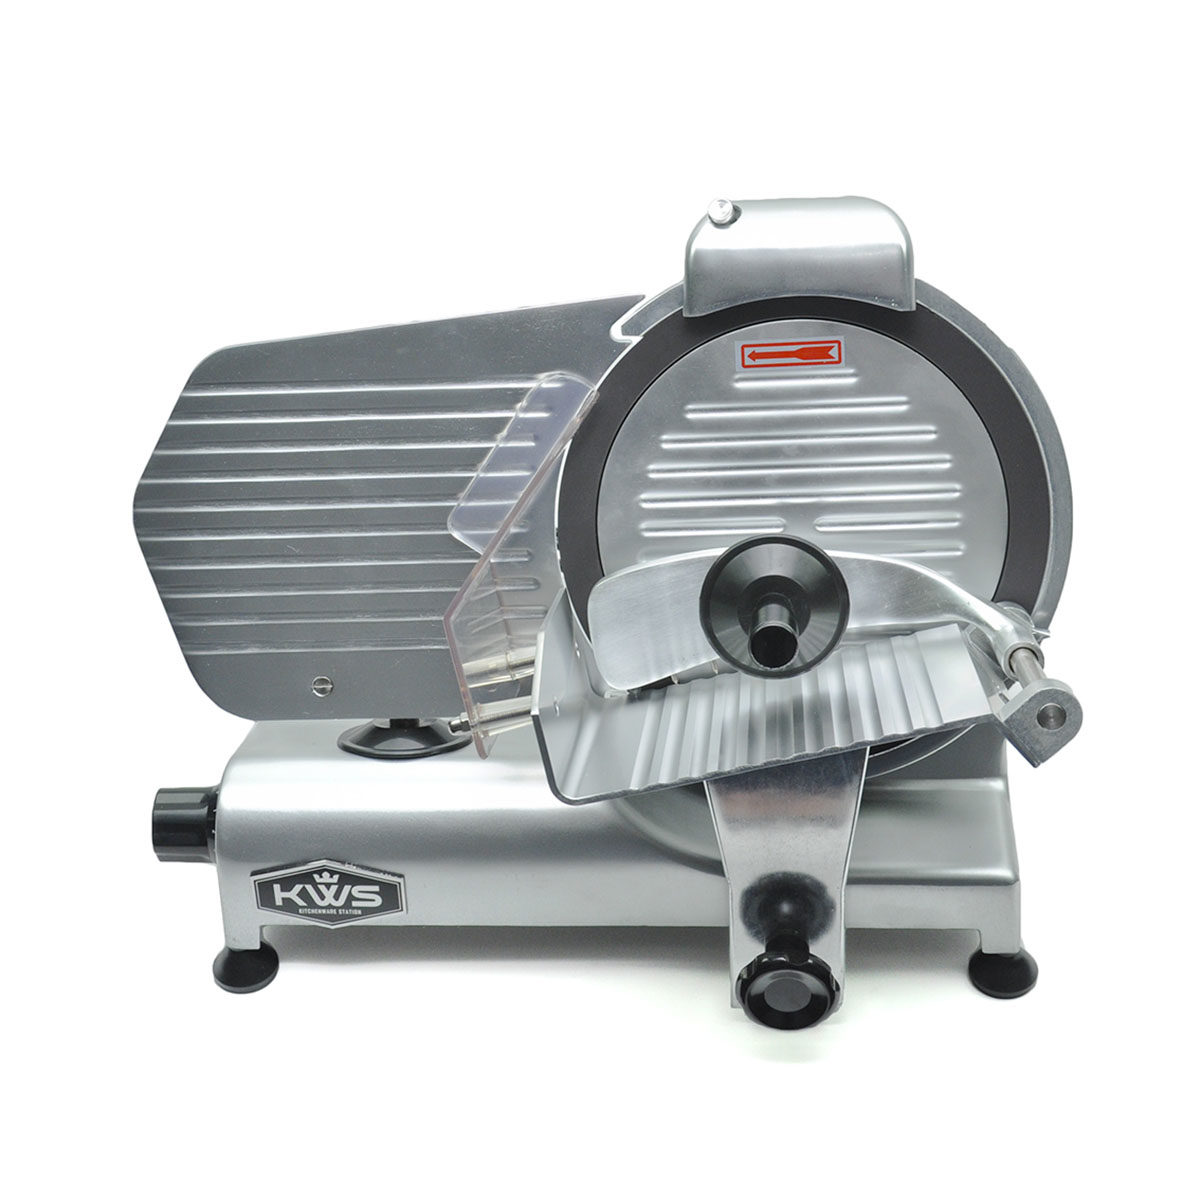 KWS MS-10NT Electric Meat Slicer